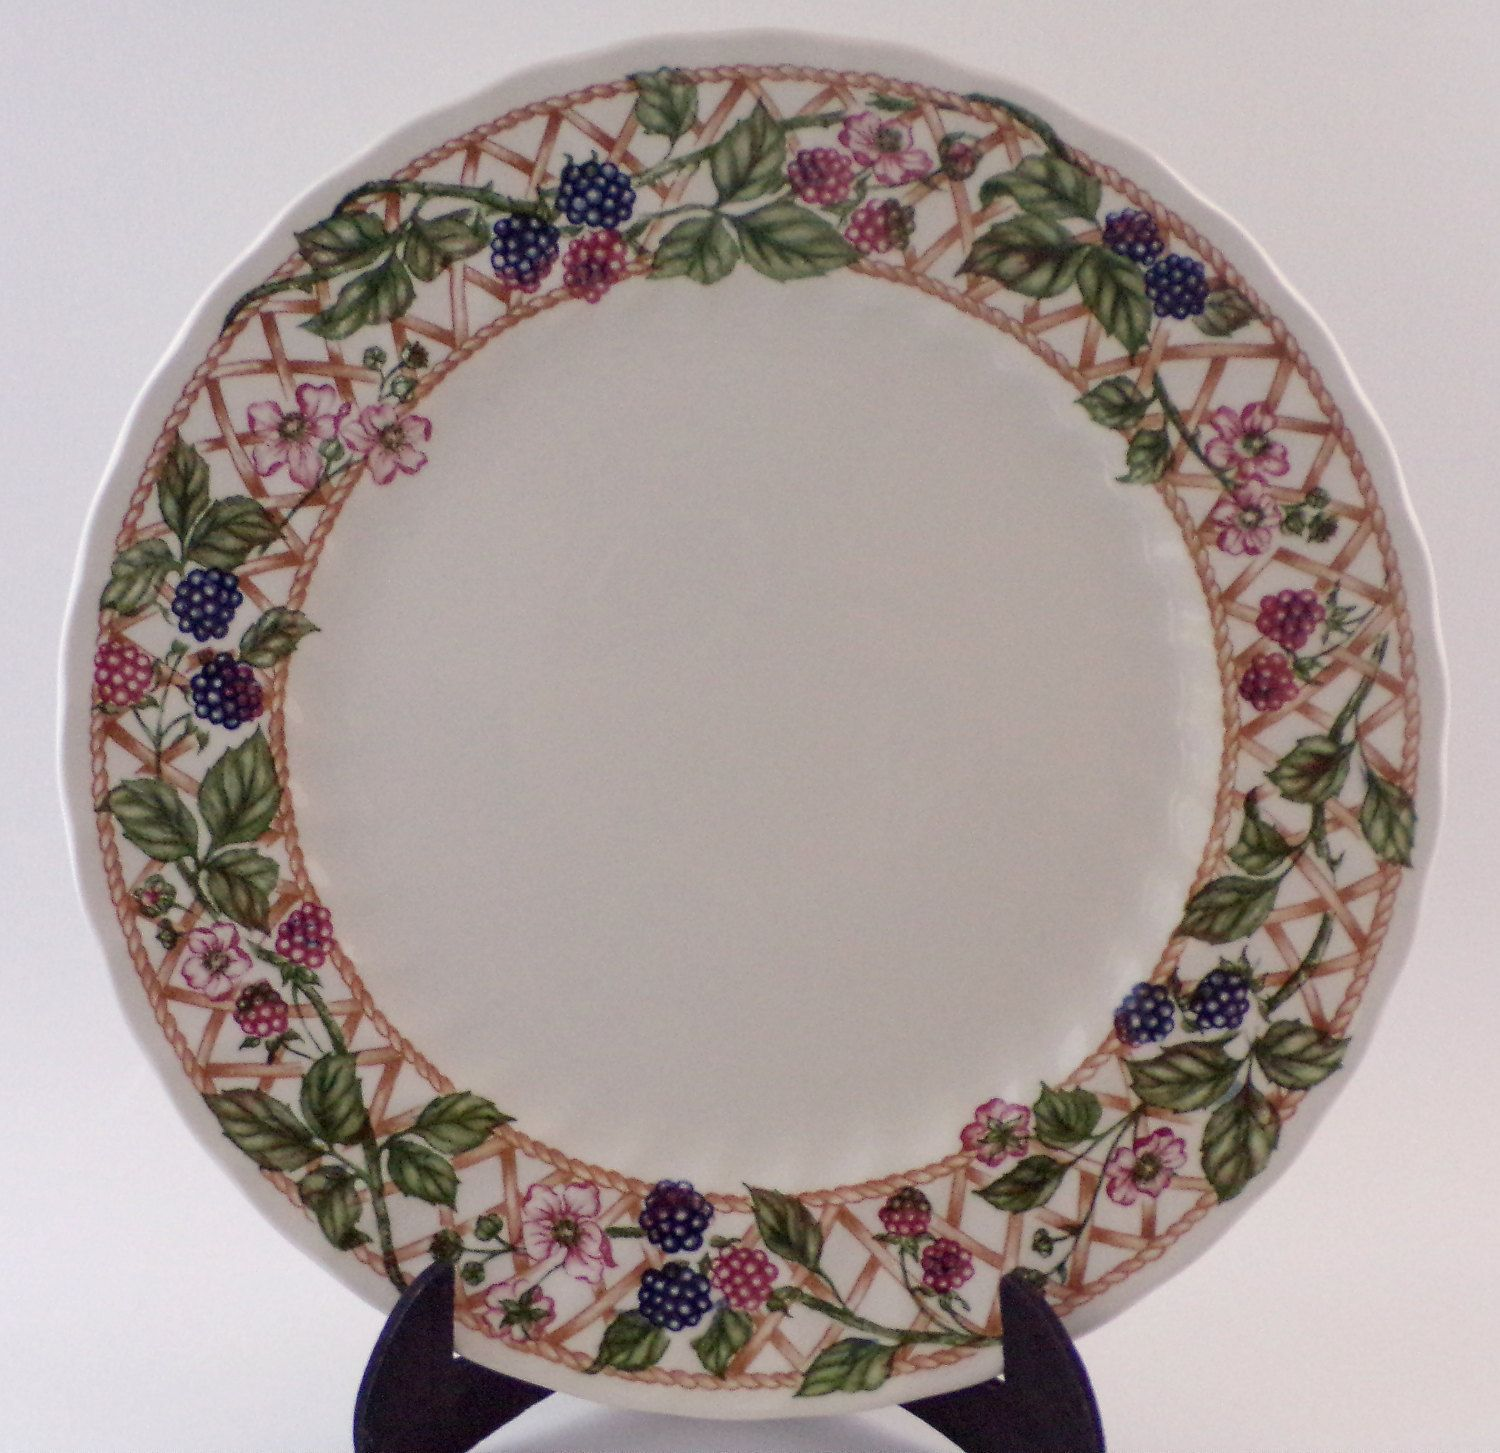 Vintage Dinner Plate Churchill The Chartwell Collection Blackberry Trellis dinner plate made in England English tableware walle deco & Vintage Dinner Plate Churchill The Chartwell Collection ...